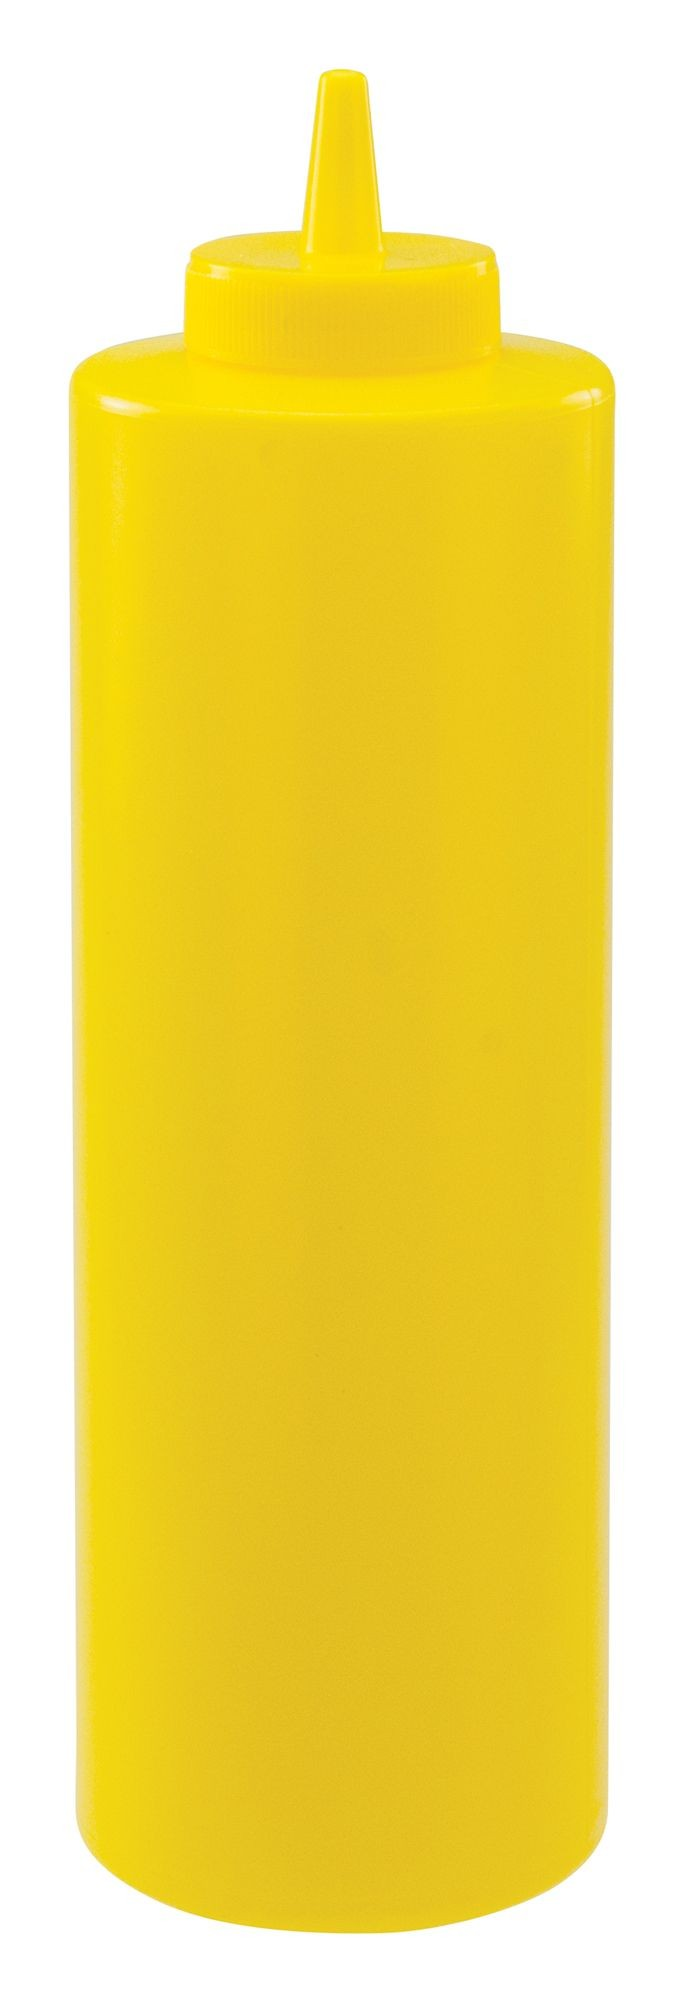 Yellow Plastic 24 Oz. Squeeze Bottle